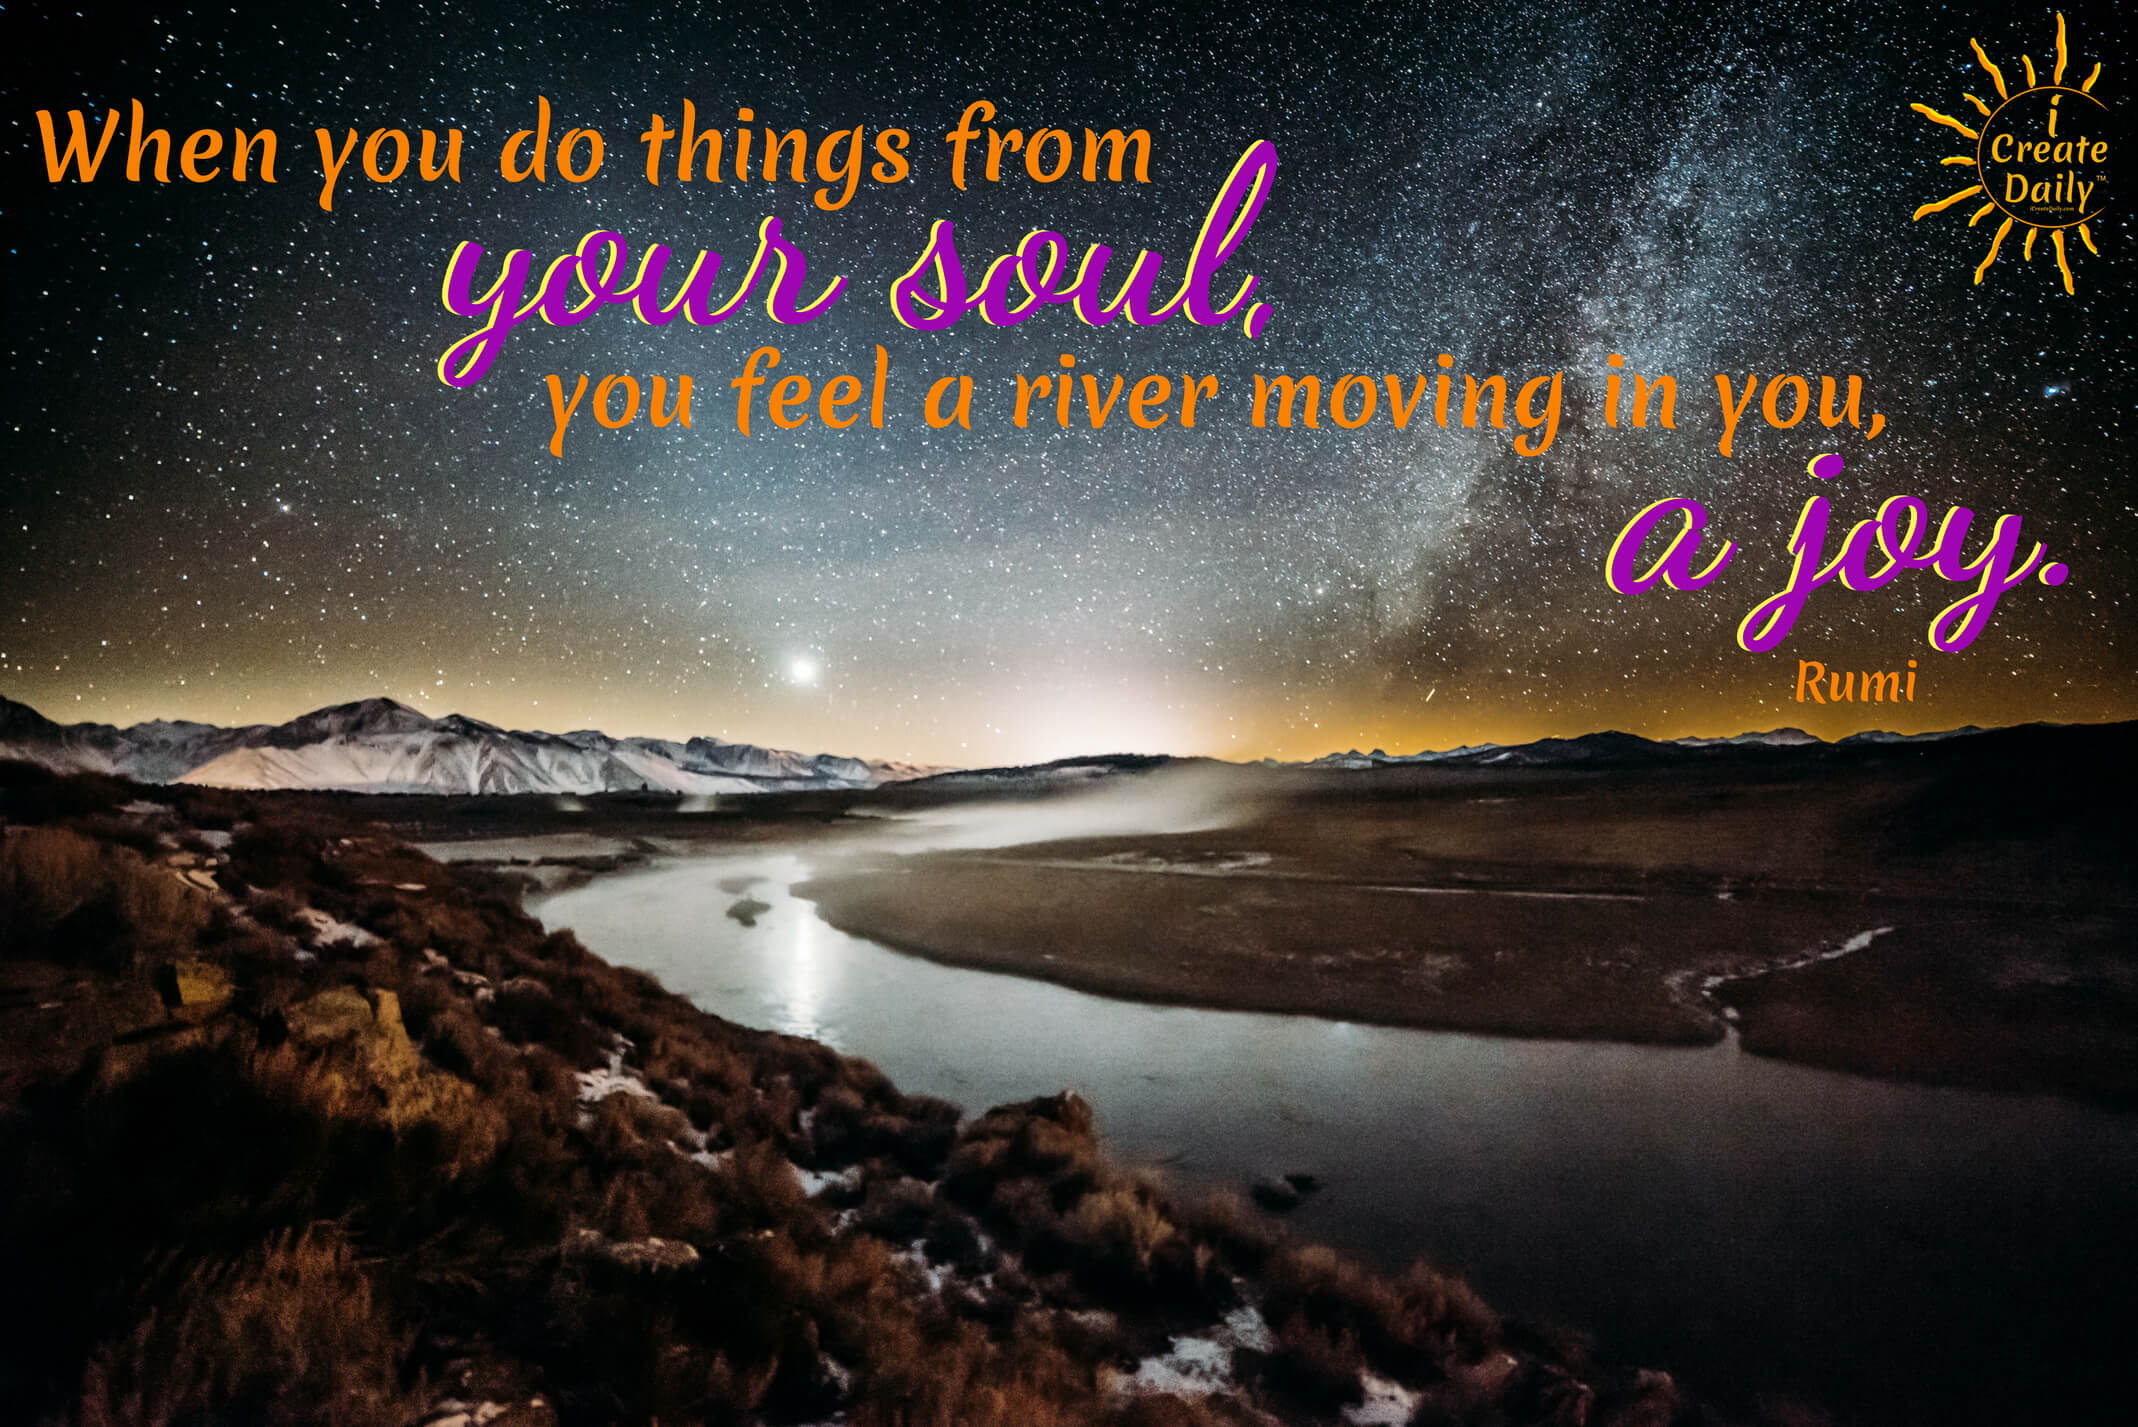 When you do things from your soul, you feel a river moving in you, a joy.~Rumi, poet & theologian #RumiQuote #JoyQuote #SoulQuote #QuotesAboutJoy